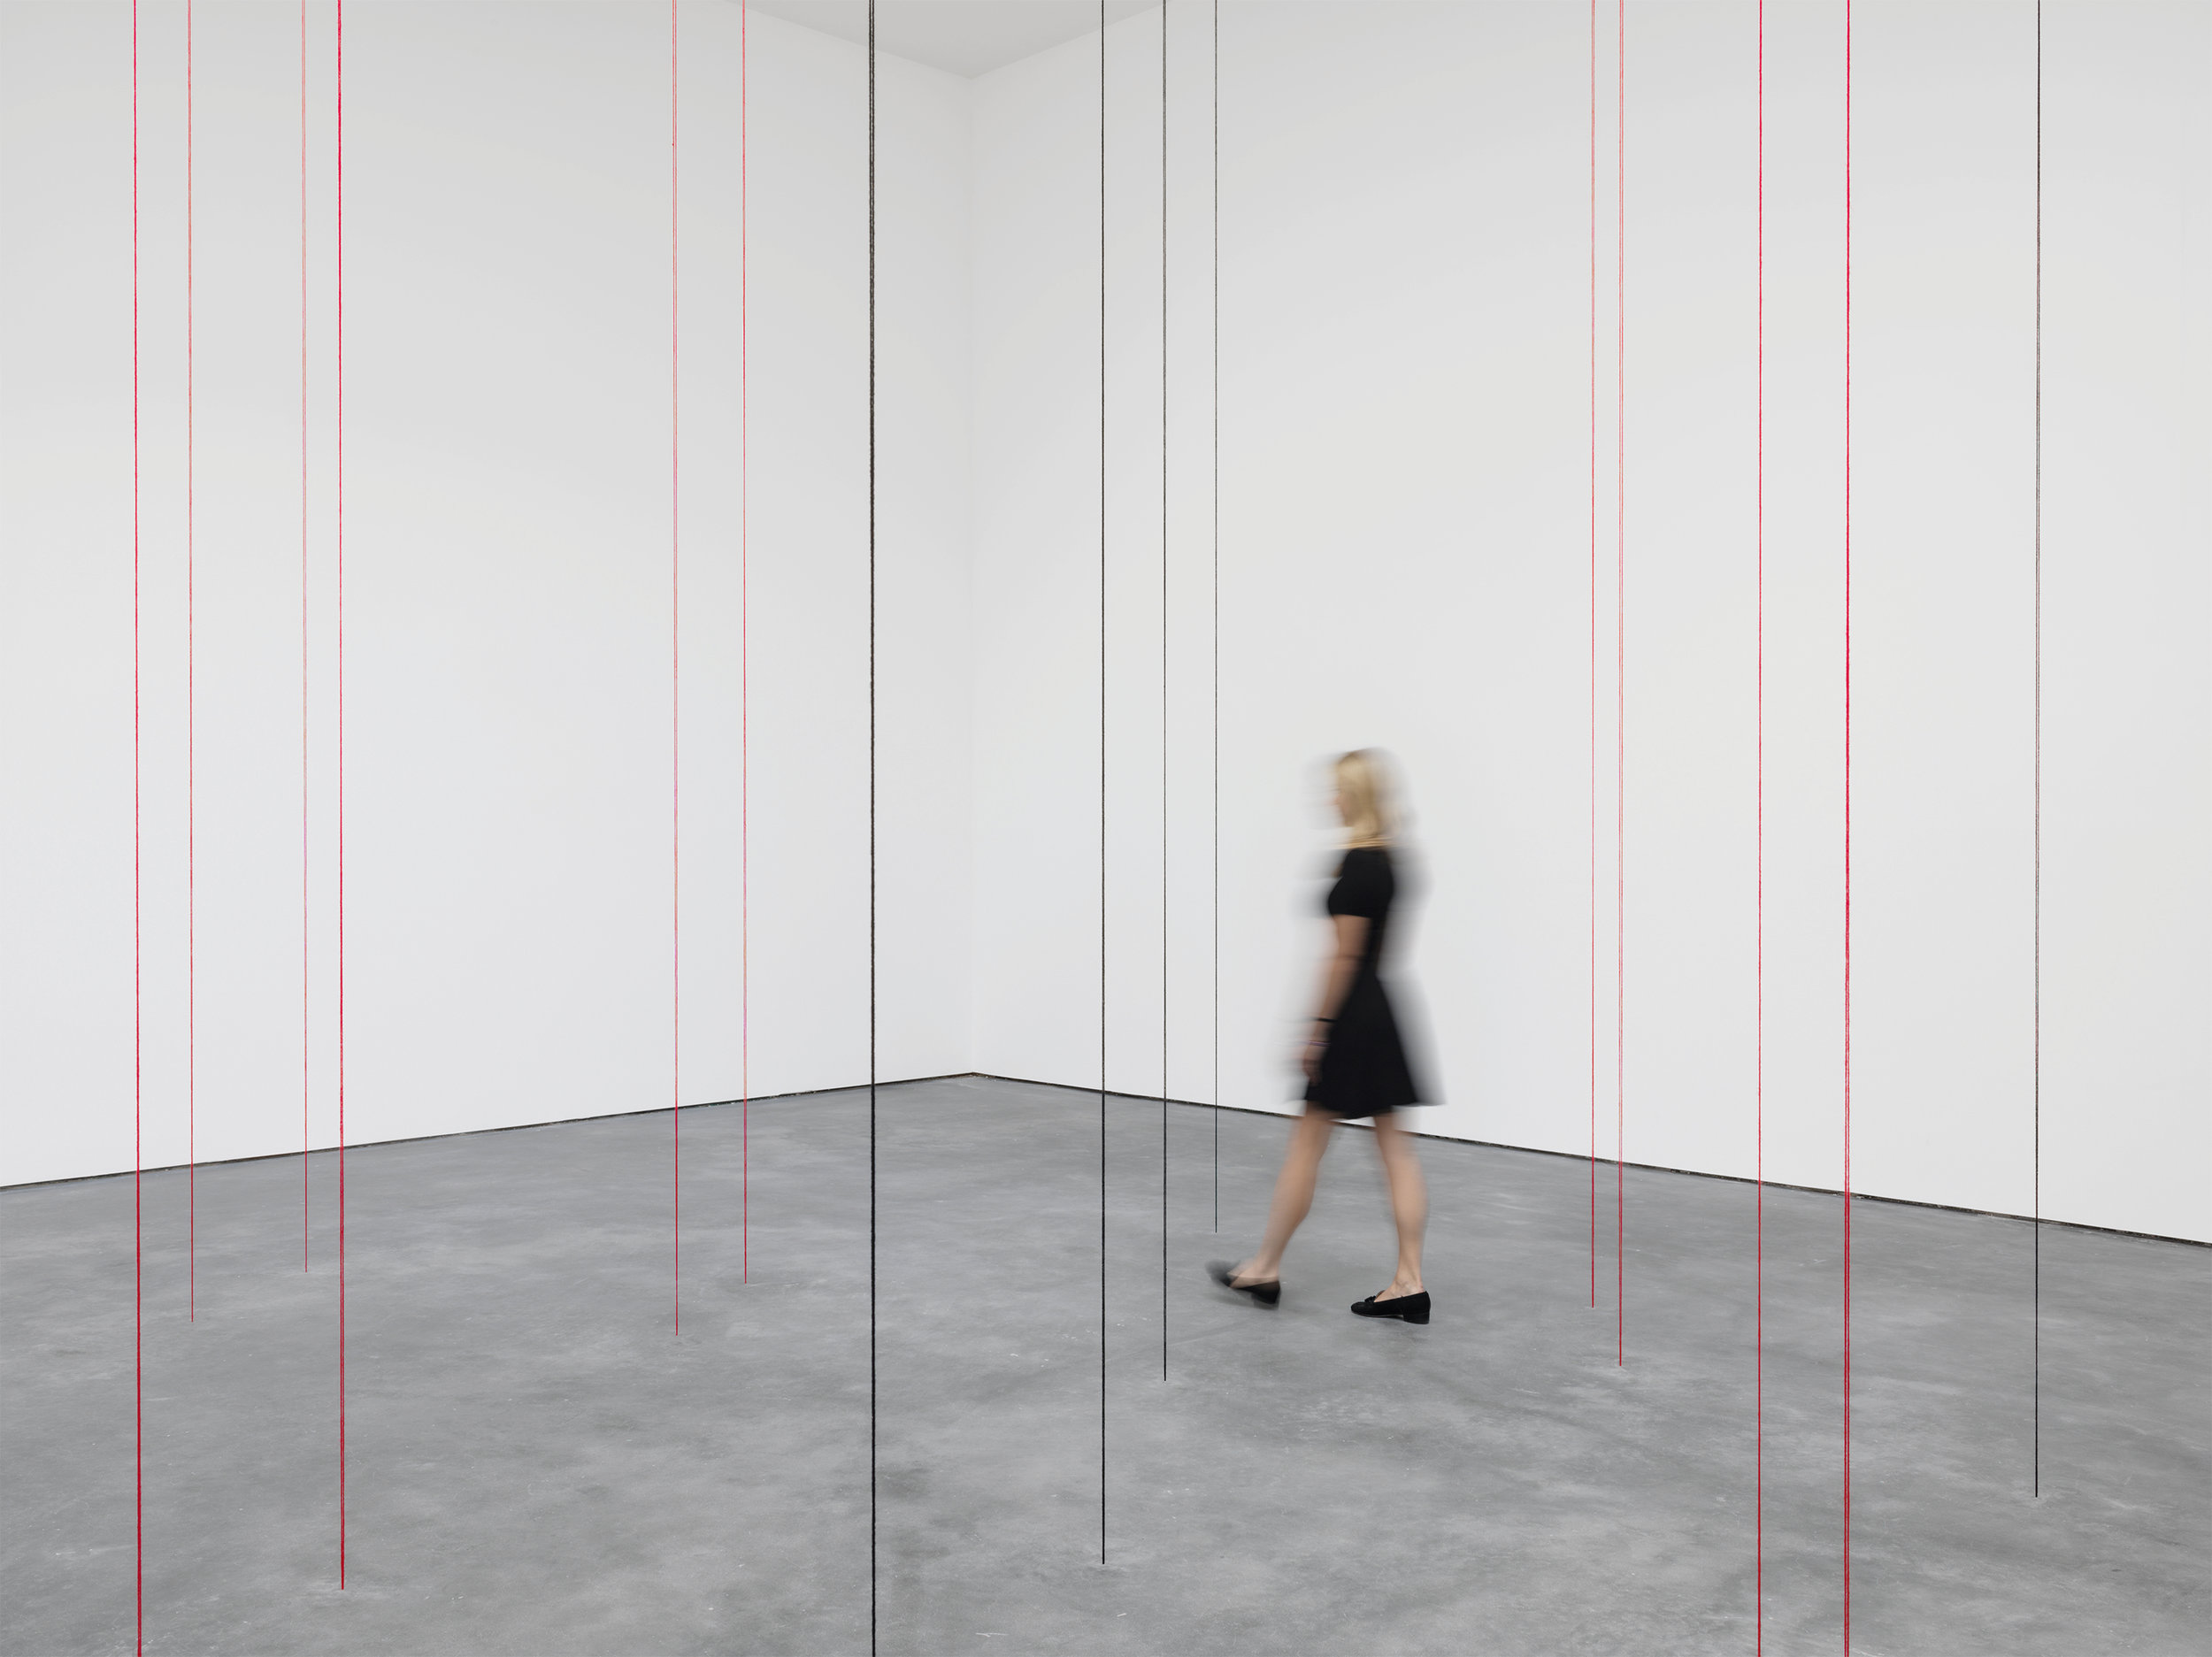 Fred Sandback. Untitled (Sculptural Study, Twenty-two-part Vertical Construction) 1991-2016, black and red acrylic yarn, dimensions variable. The Estate of Fred Sandback. Courtesy David Zwirner